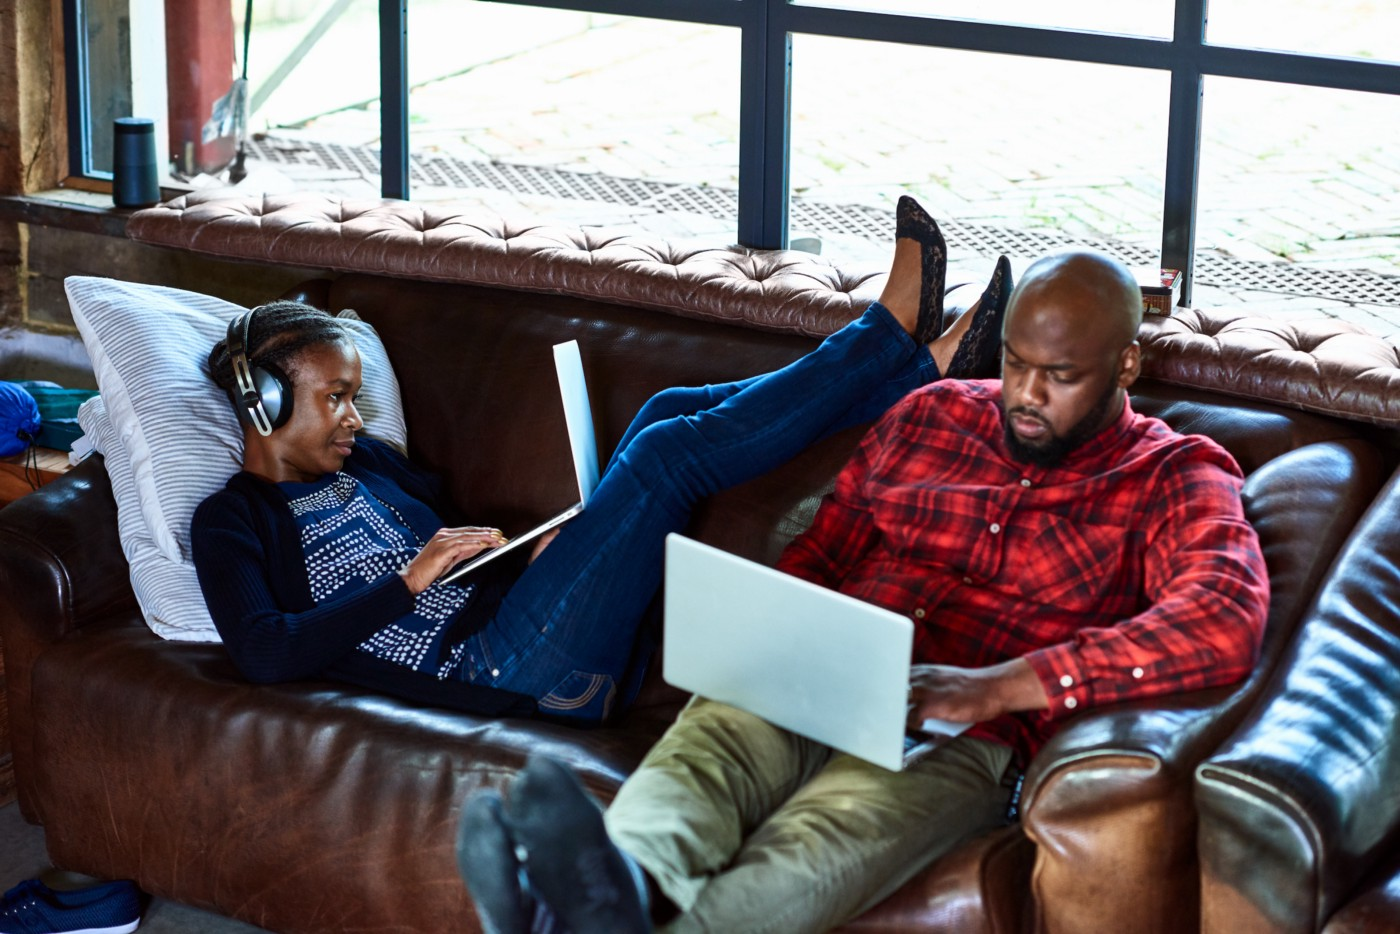 2 people sitting on a sofa working on laptops. One's reclined, resting their feet on the shoulder of the other, who's upright